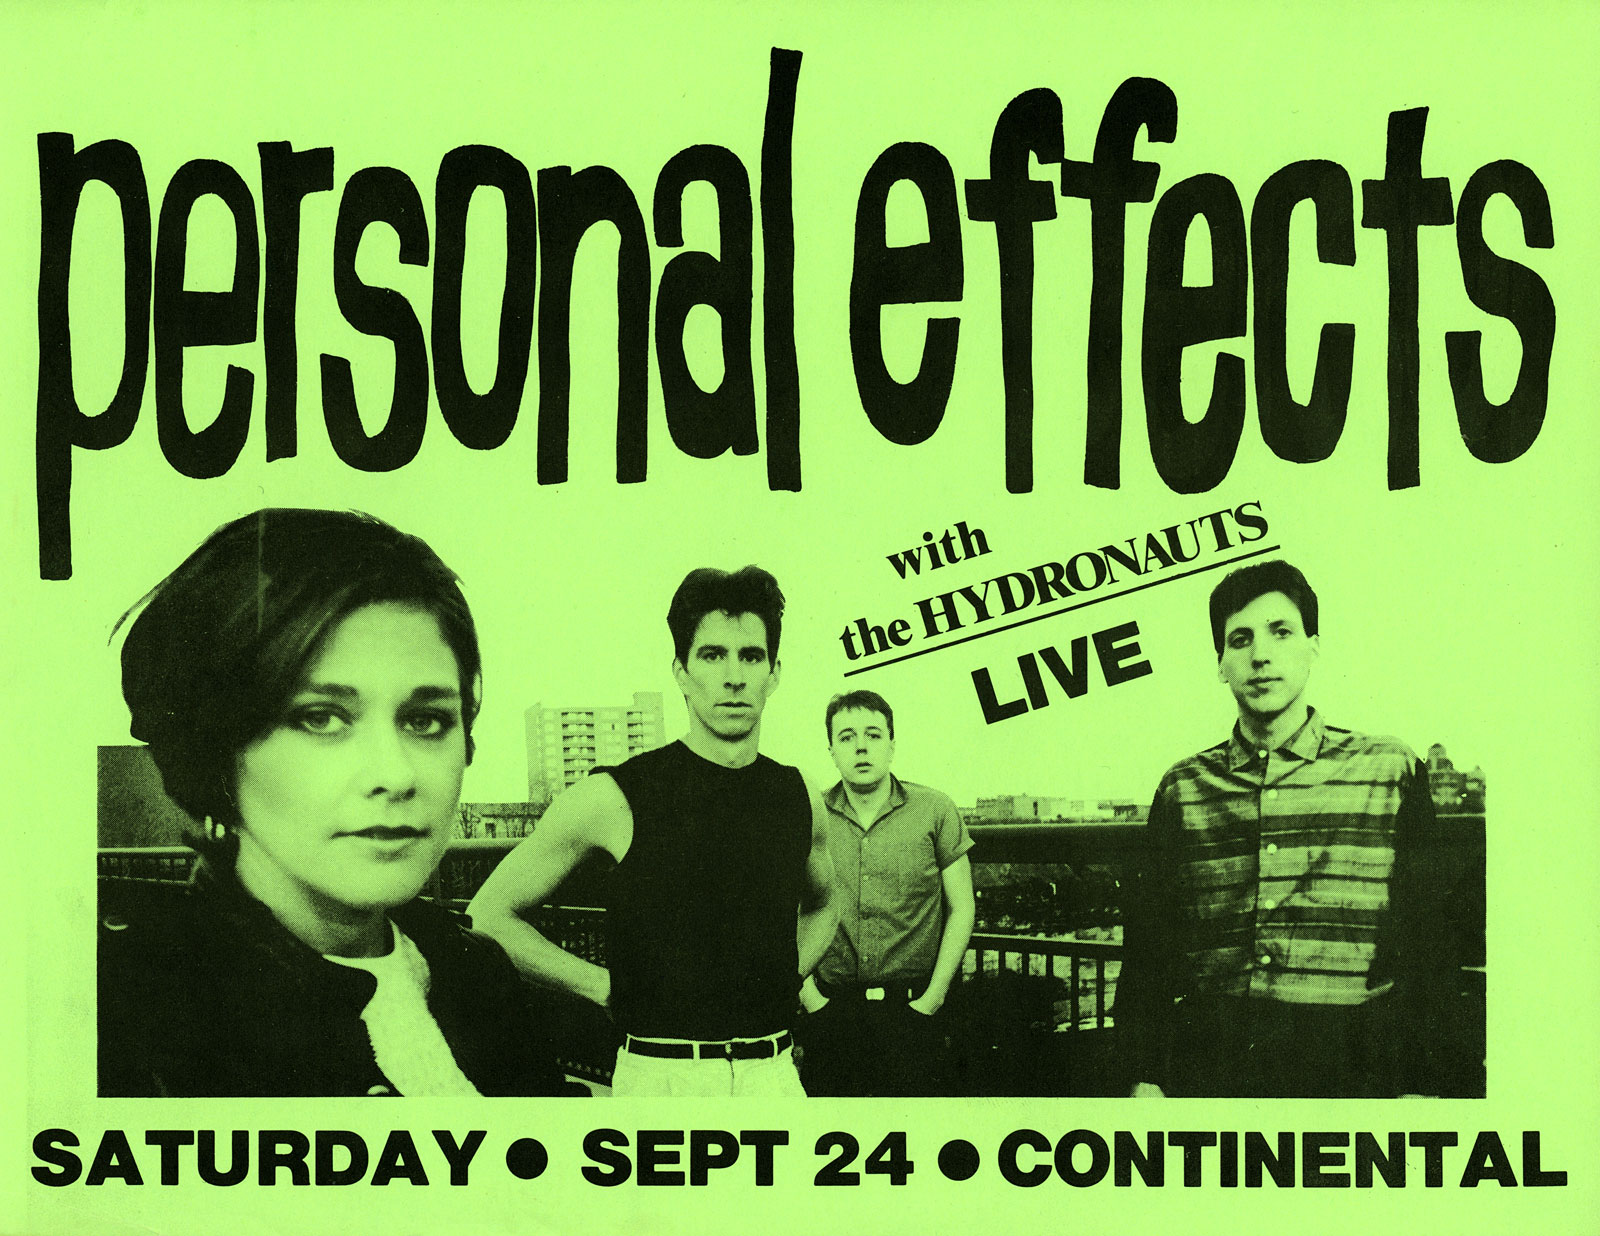 Poster for Personal Effects at The Continental in Buffalo New York with The Hydronauts on 09.24.1983